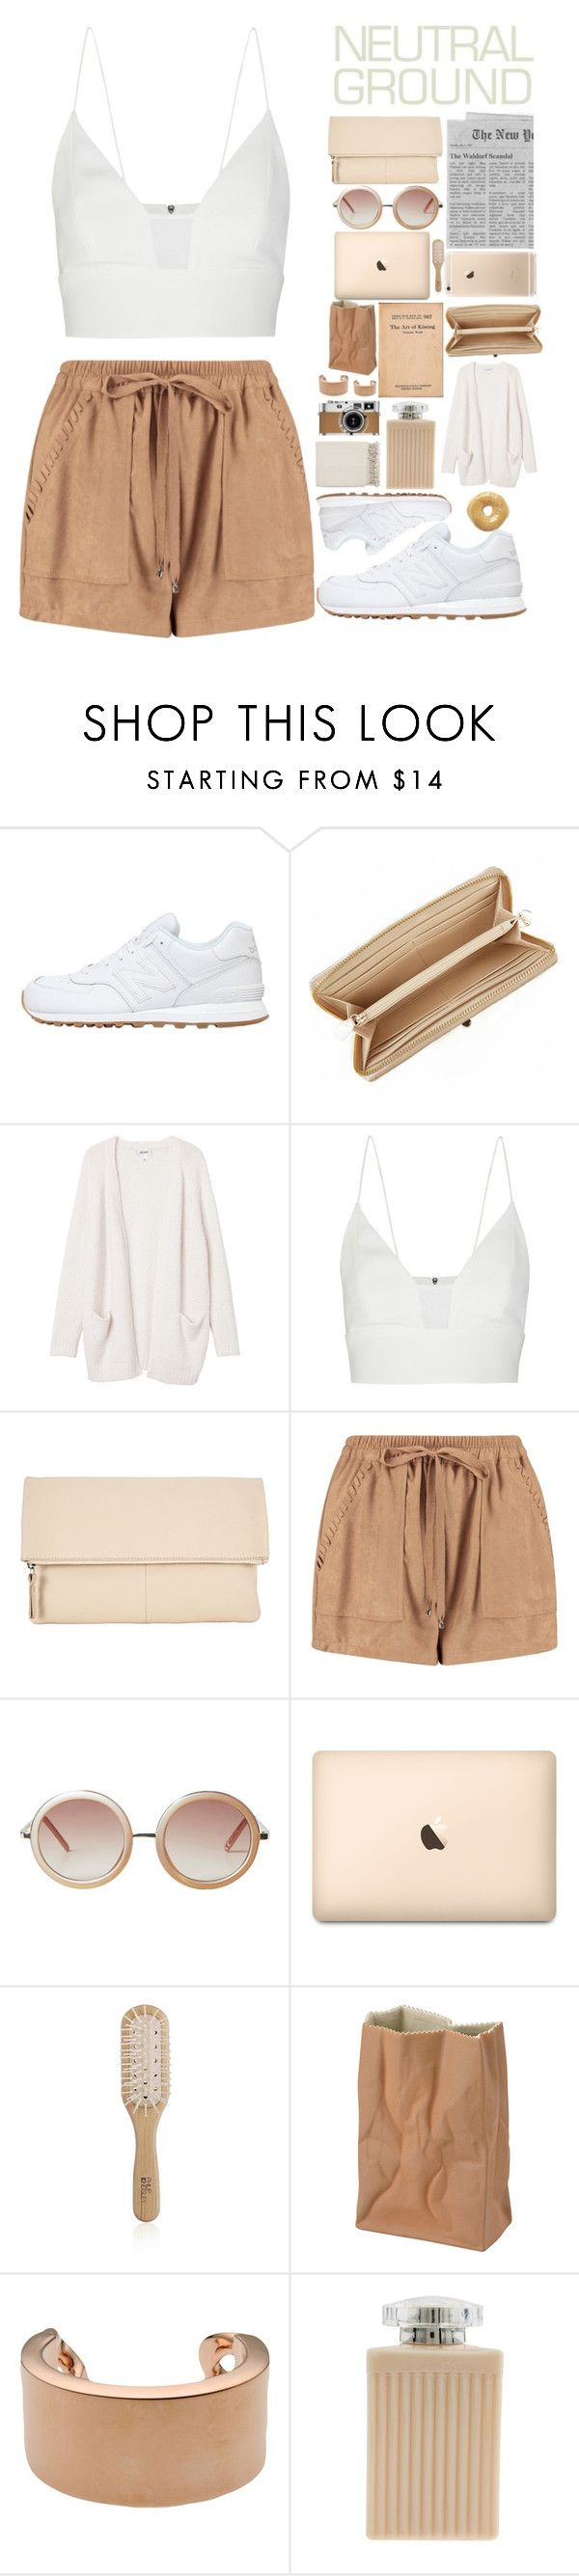 """""""neutral"""" by experimental-m on Polyvore featuring New Balance, DKNY, Monki, Narciso Rodriguez, Kin by John Lewis, Boohoo, Philip Kingsley, Rosenthal, Maison Margiela and Chloé"""